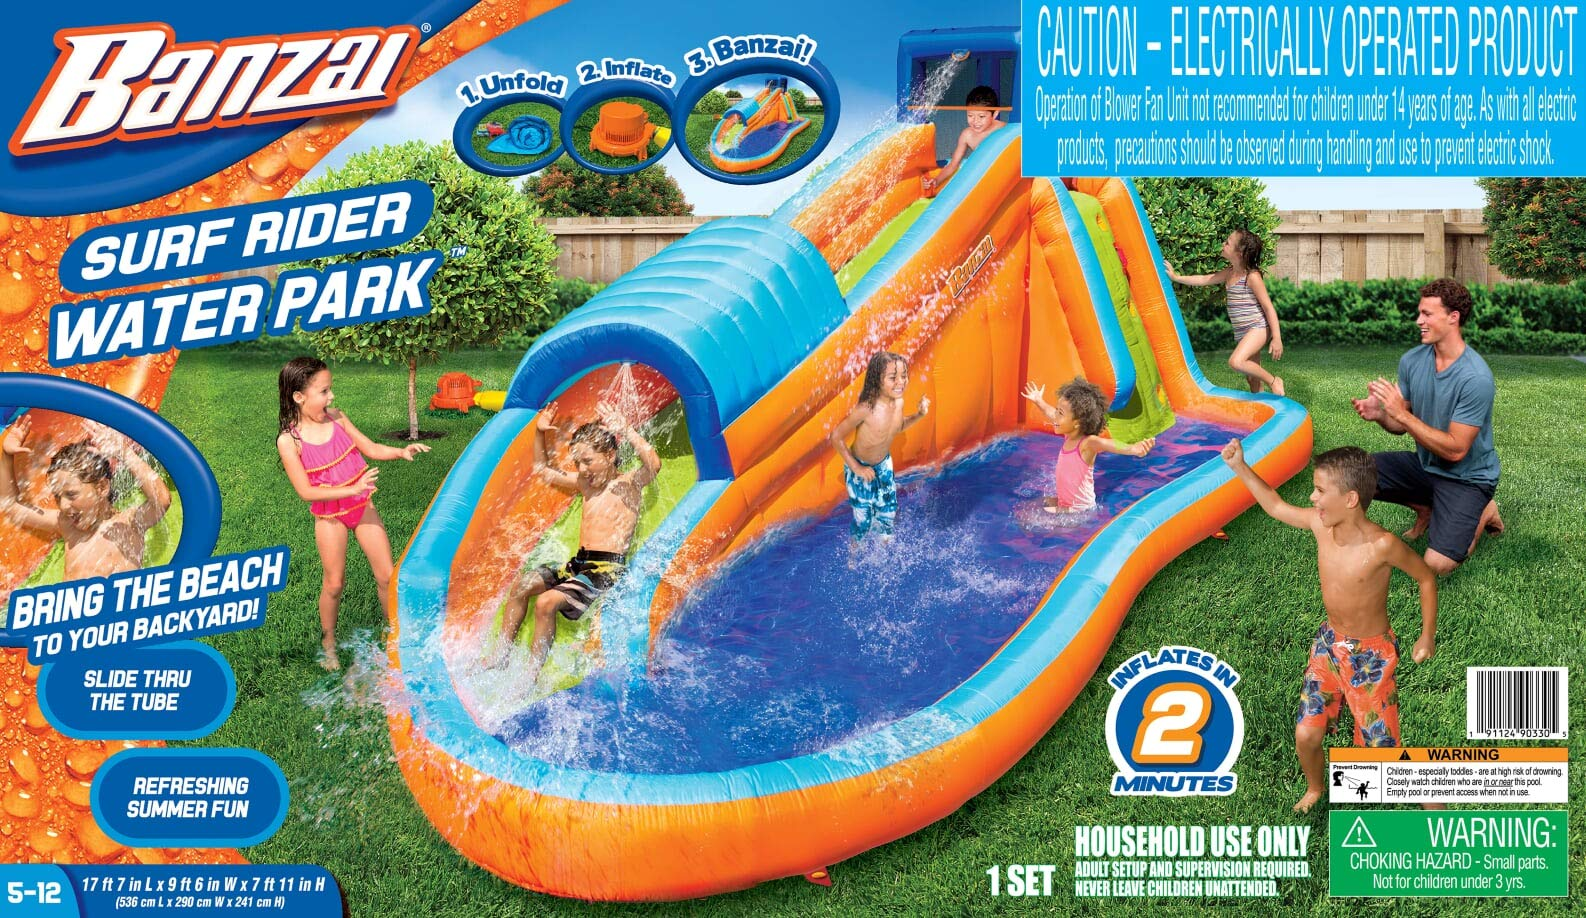 BANZAI 90330 Surf Rider Inflatable Backyard Outdoor Water Park with Blow Motor by BANZAI (Image #6)